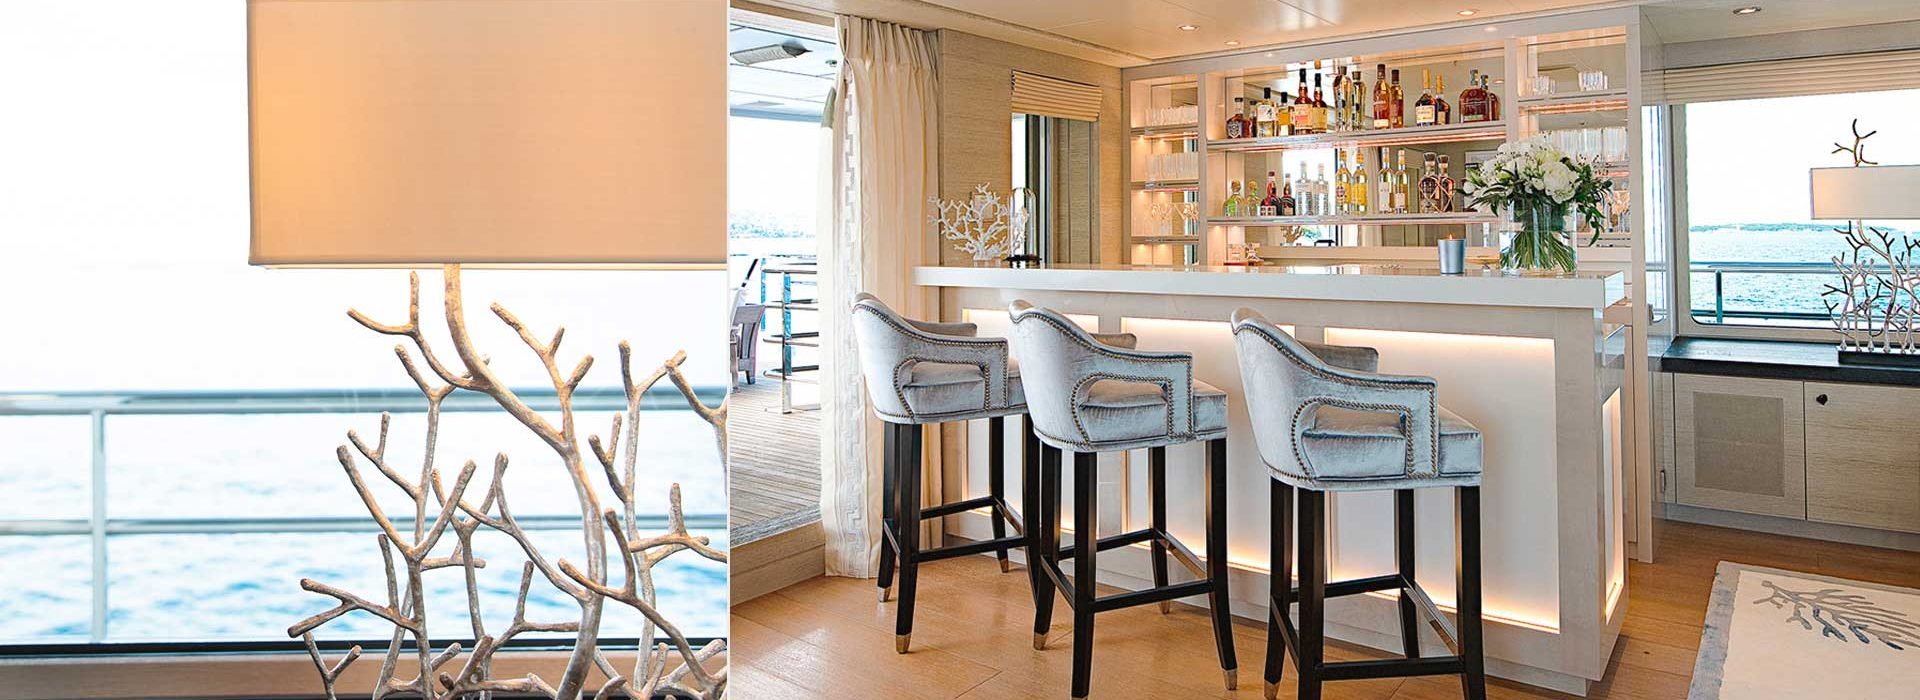 YACHT-REFIT-AMELS-LIMITED-EDITION-11-Dome-interior-design-Geneve-Suisse